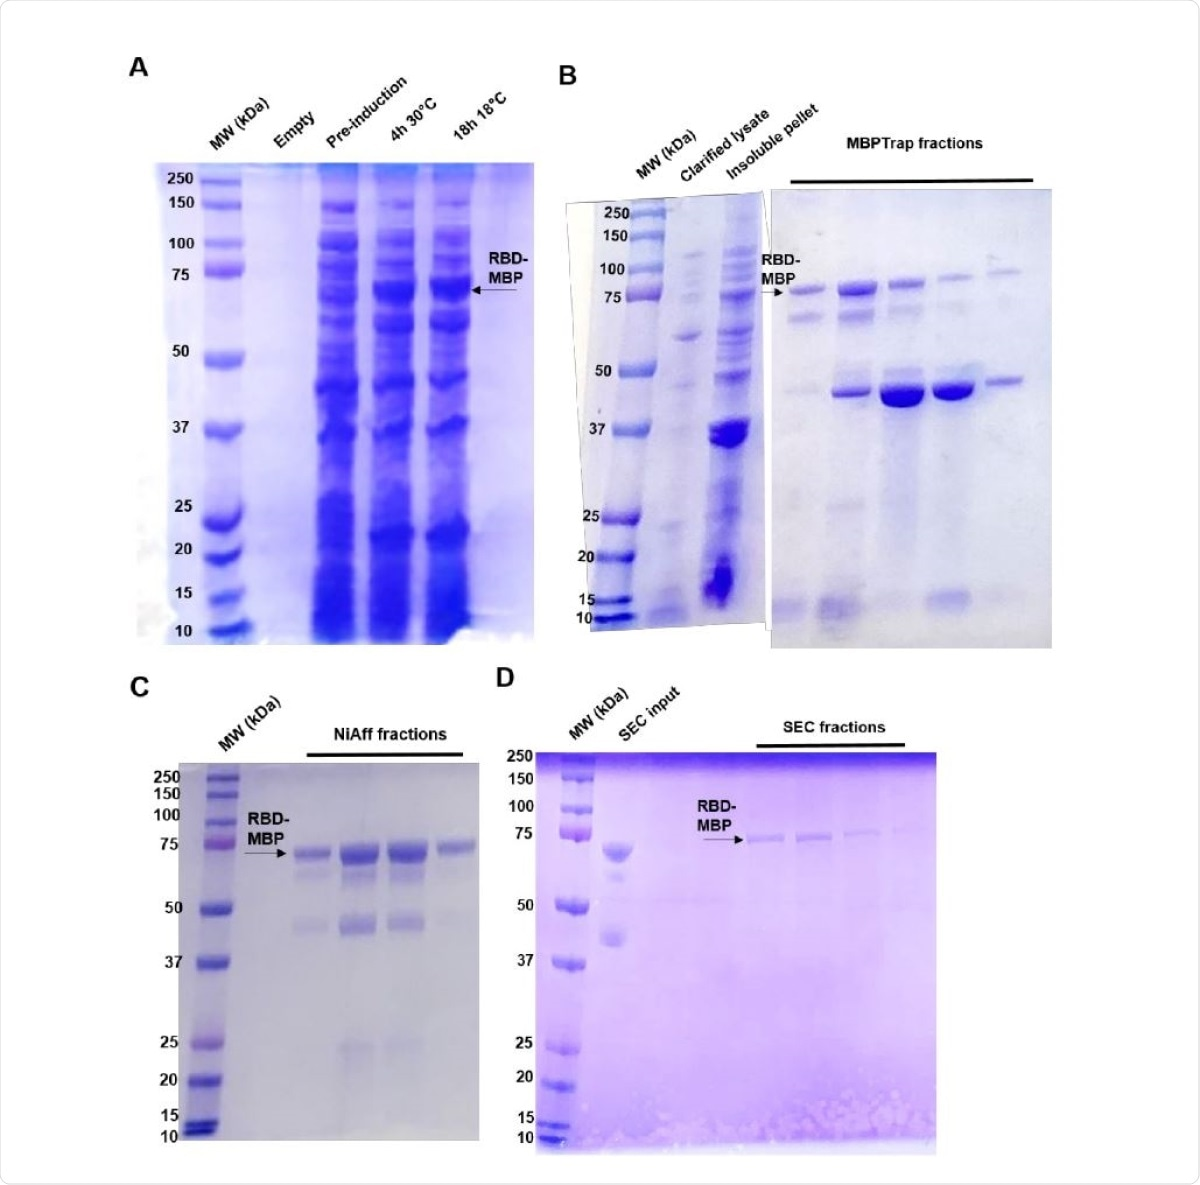 Protein purification SDS-PAGE gels. RBD-MBP can be observed running at 74 kDa, as indicated by the black arrows near the 75 kDa marker. Black arrows at approximately 42 kDa could indicate endogenously produced or cleaved MBP. A) Initial induction experiment comparing same-day (4 h) induction at 30° C and overnight (16 h) induction at 18° C. B) MBPTrap AKTA fractions. C) Nickel-affinity AKTA fractions. D) Size-exclusion AKTA fractions.